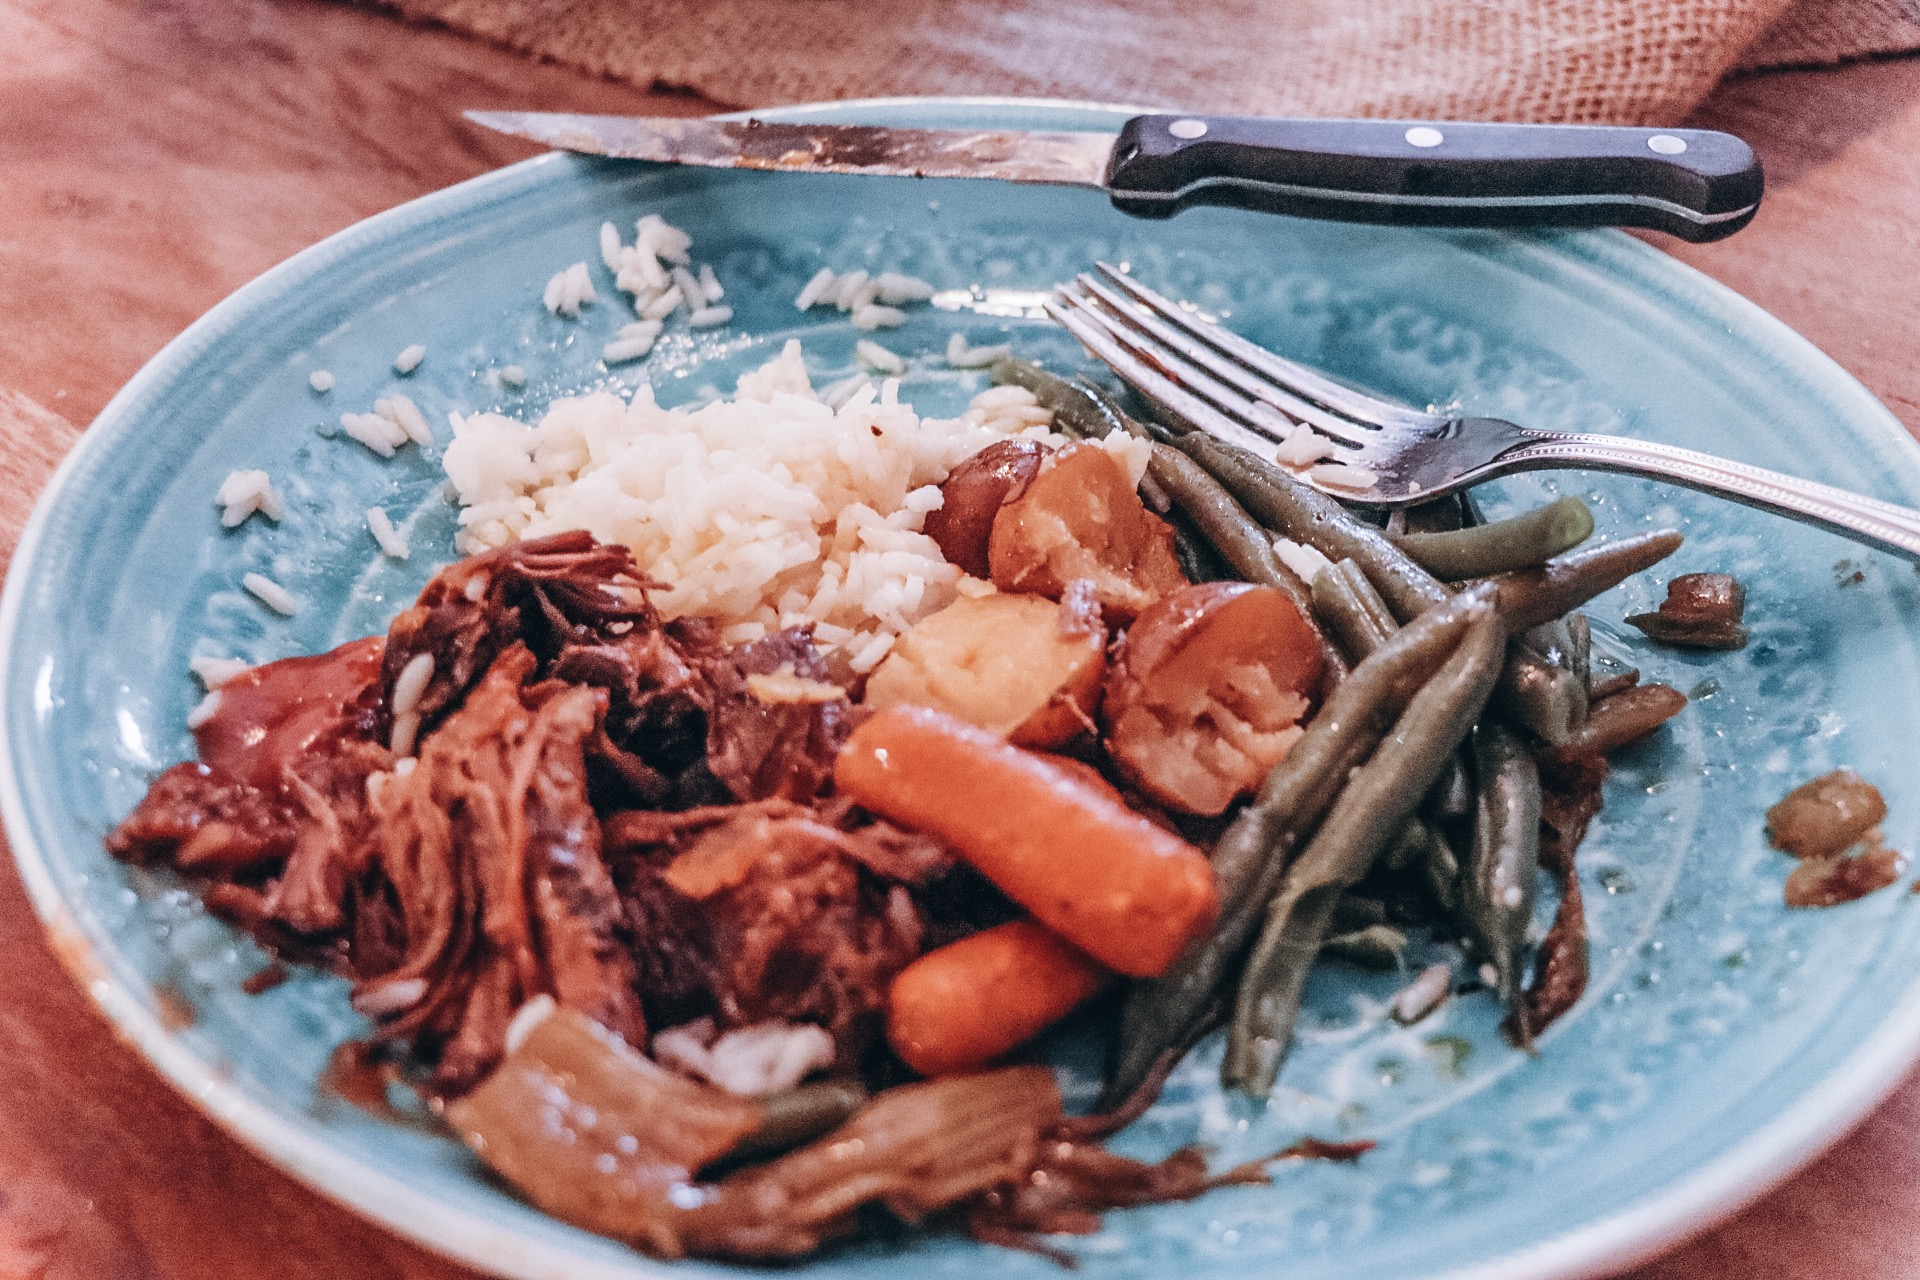 Best Crock Pot Recipes: How to Make the Perfect Roast